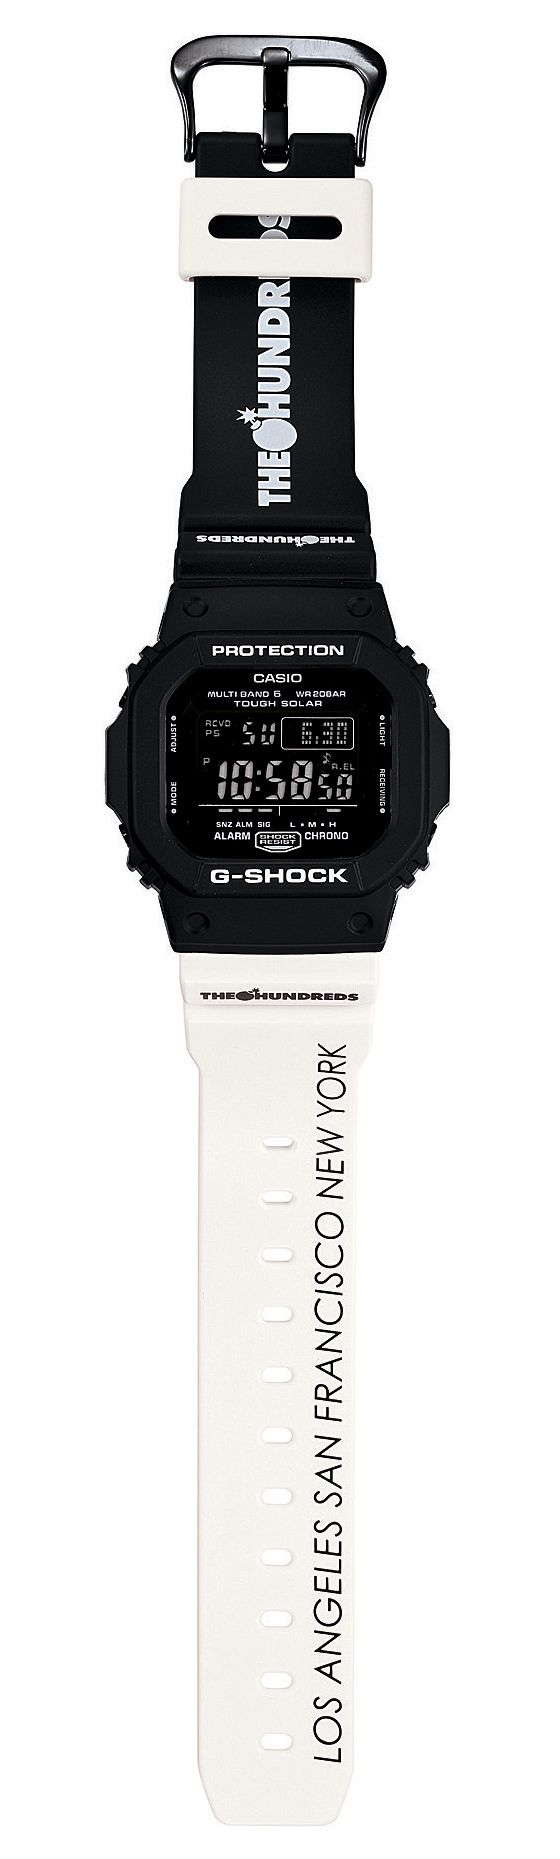 G-Shock x The Hundreds colab watch looks sweet